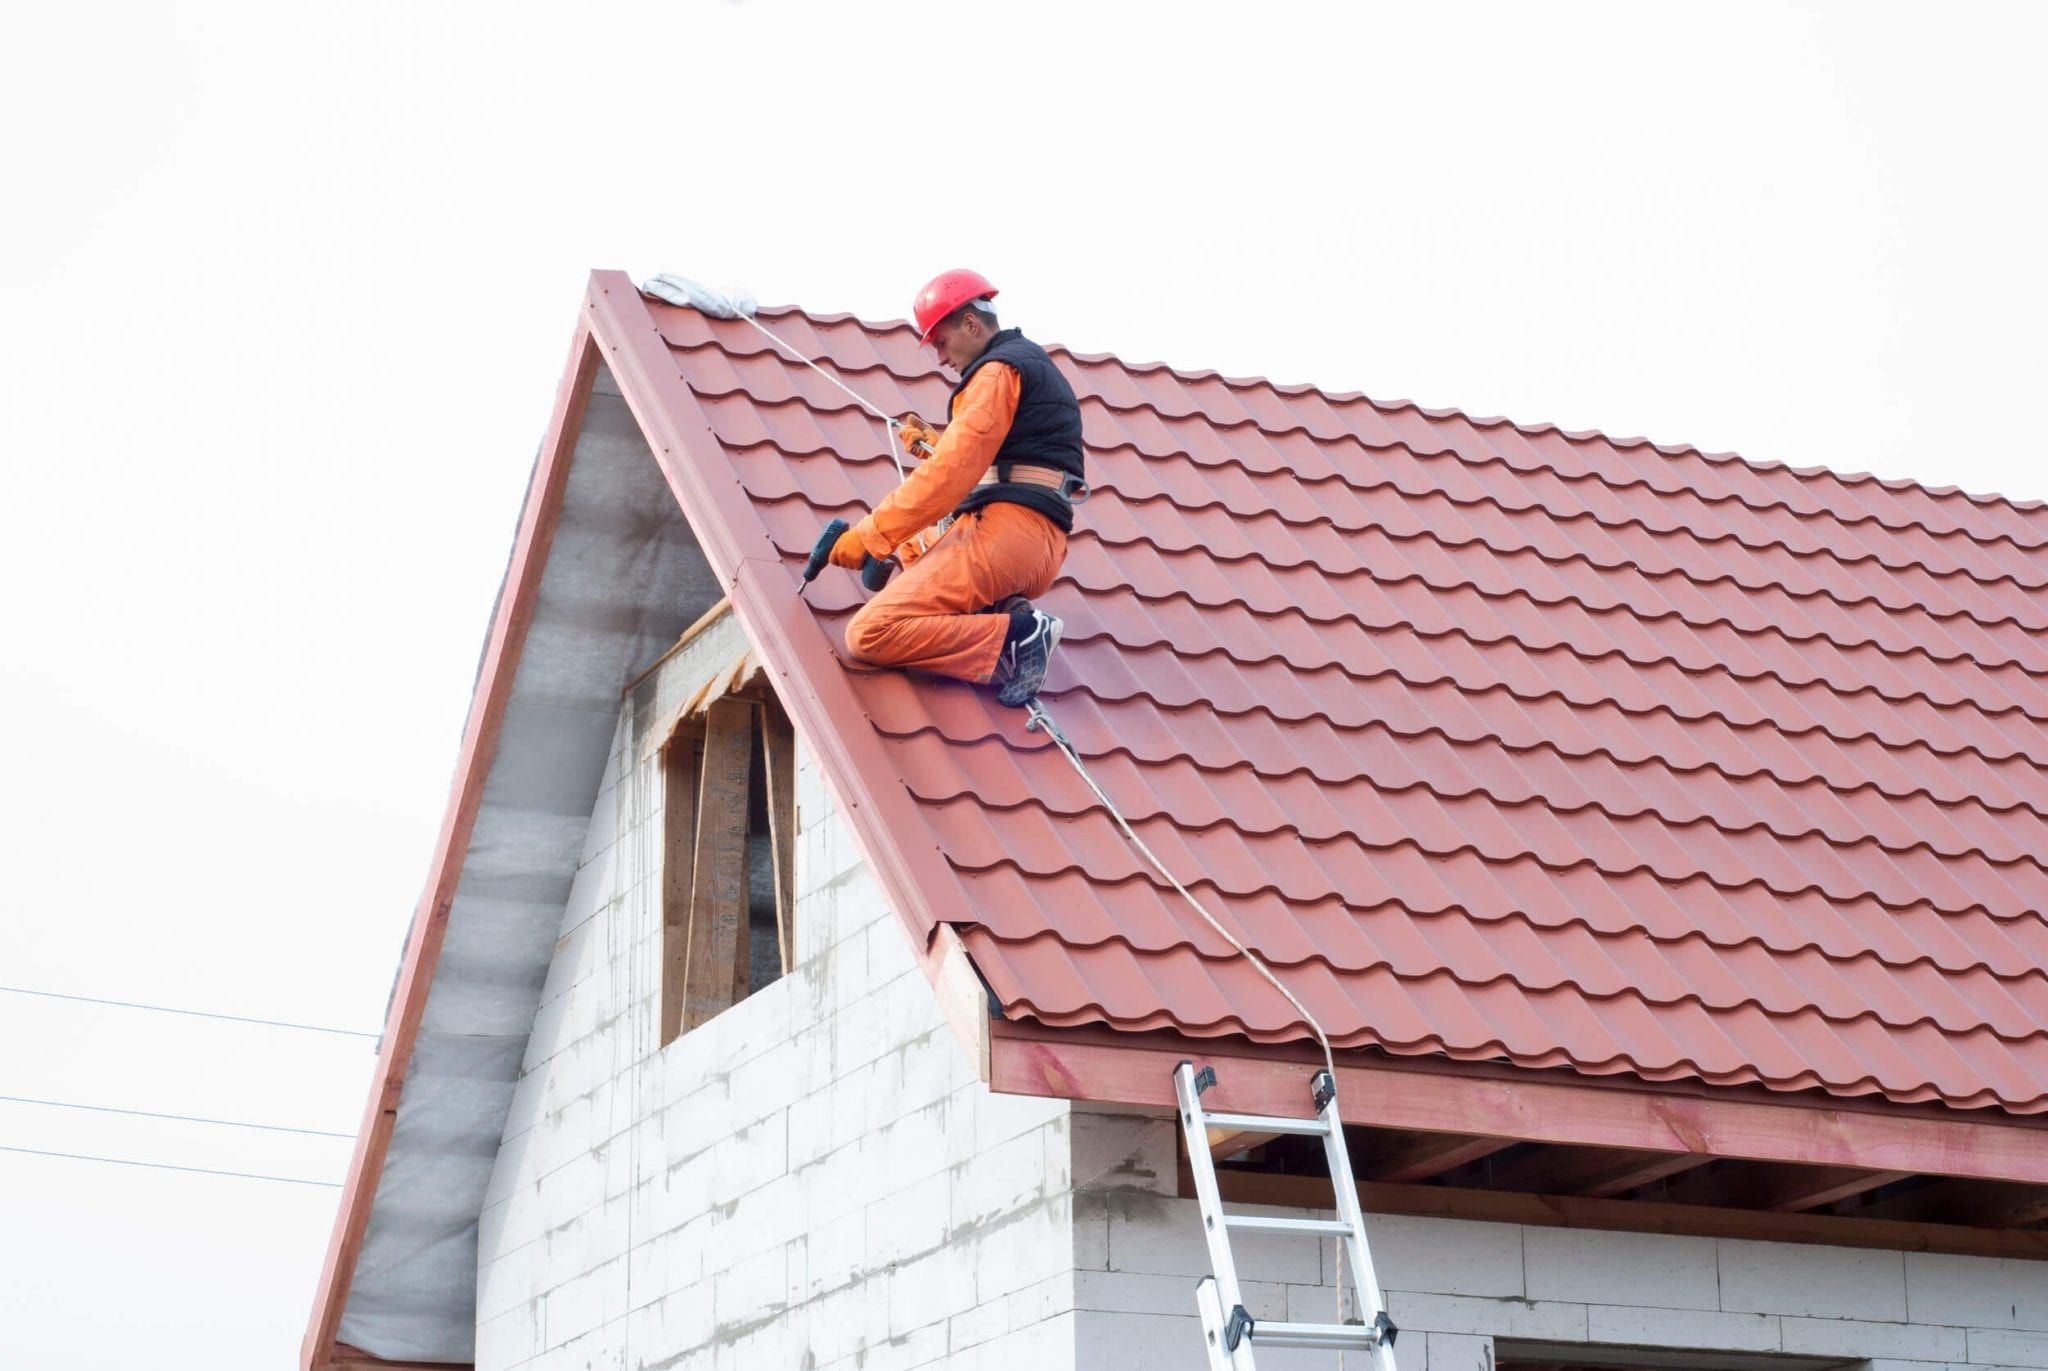 Roof Insurance: Tips for Filing a Claim